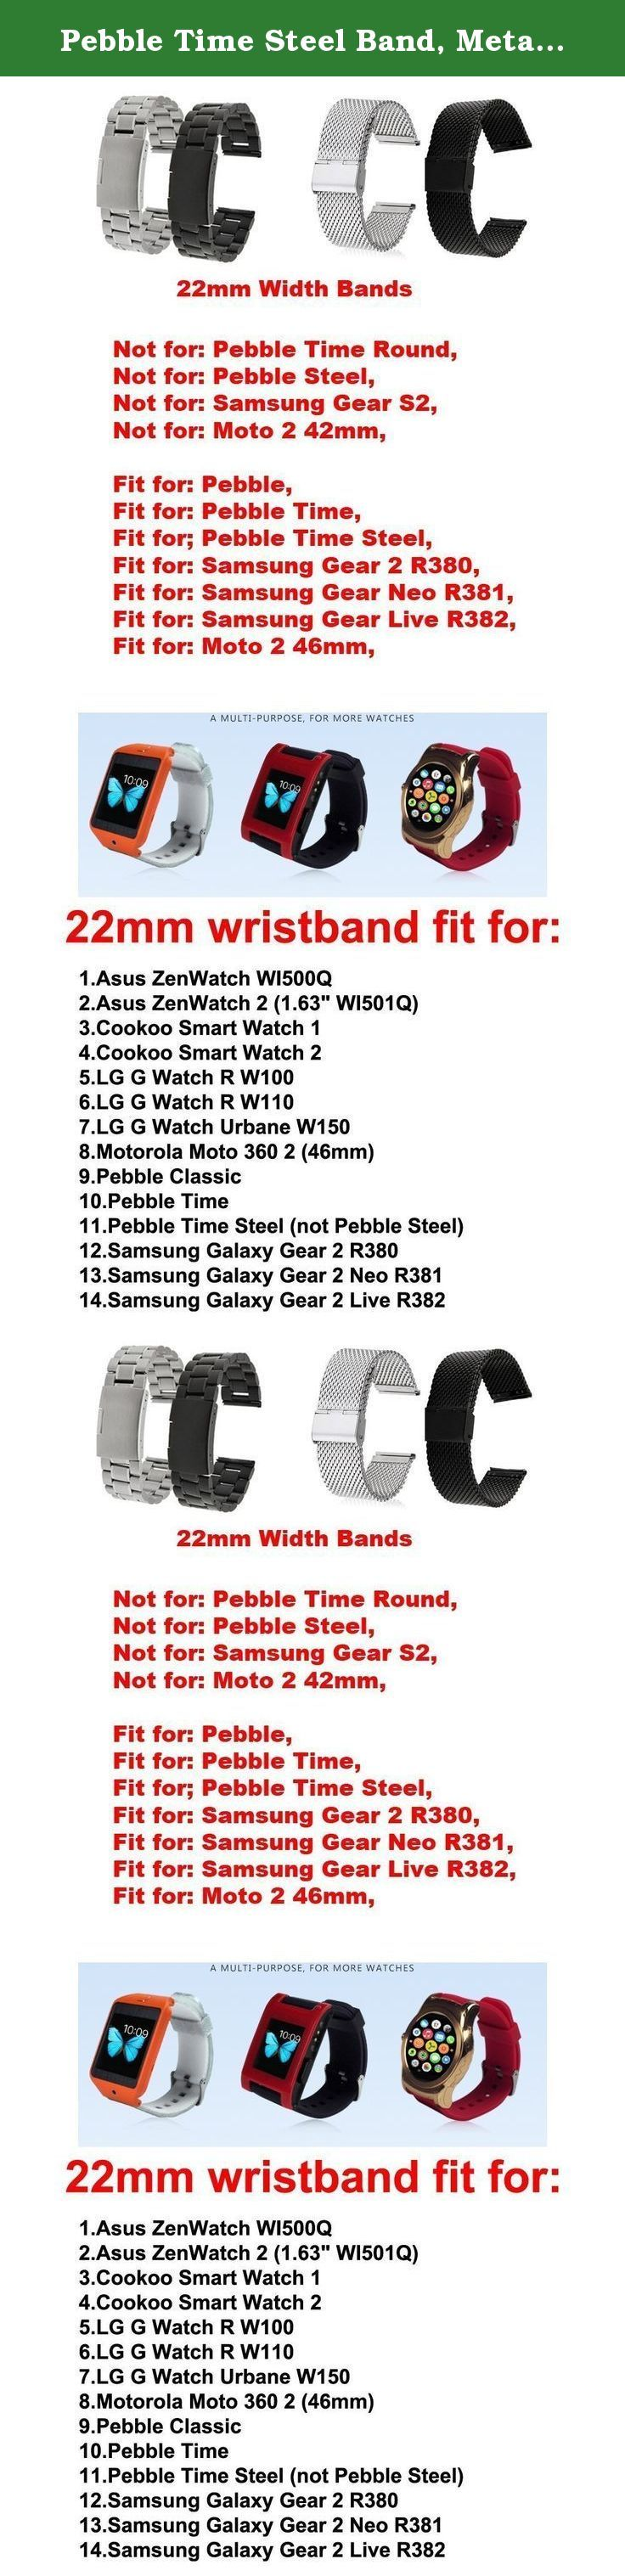 Pebble Time Steel Band, Metal, Replacement Stainless Steel Watch Strap for Pebble Time Steel (NOT Pebble Steel) Smart Watch /No Watch - MeshGolden. Metal Watchband/ Stainless Steel Strap fits for (Pebble Time Steel) Smart Watch, Please NOTE: Not Pebble Steel With Prefect workmanship, fashion design, comfortable feeling, stylish look, giving you noble wearing experience, easy to use, come with a set of tools Easy to install and remove; Width: 22mm; Length adjustable length; Best metal…